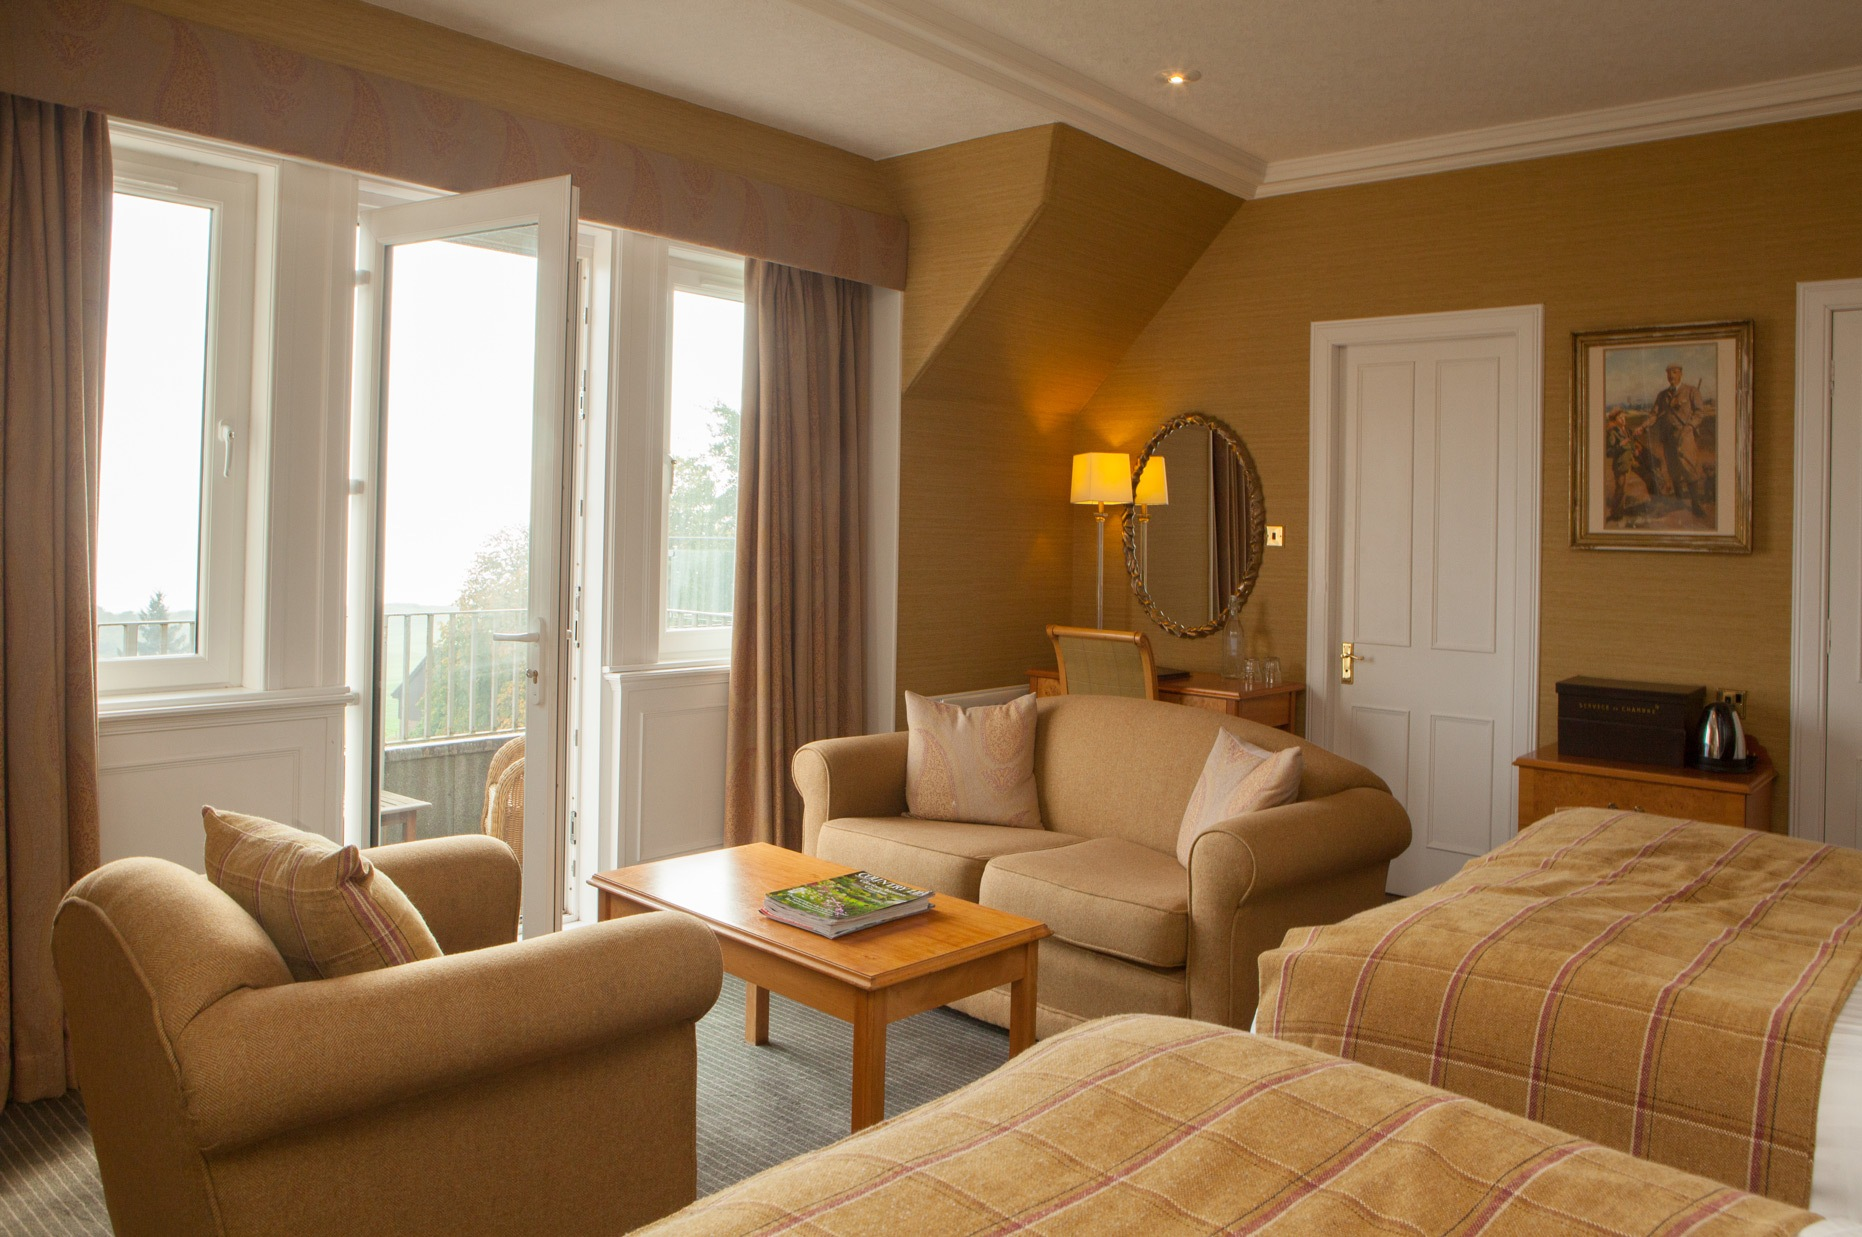 luxury accommodation with sea views in fife